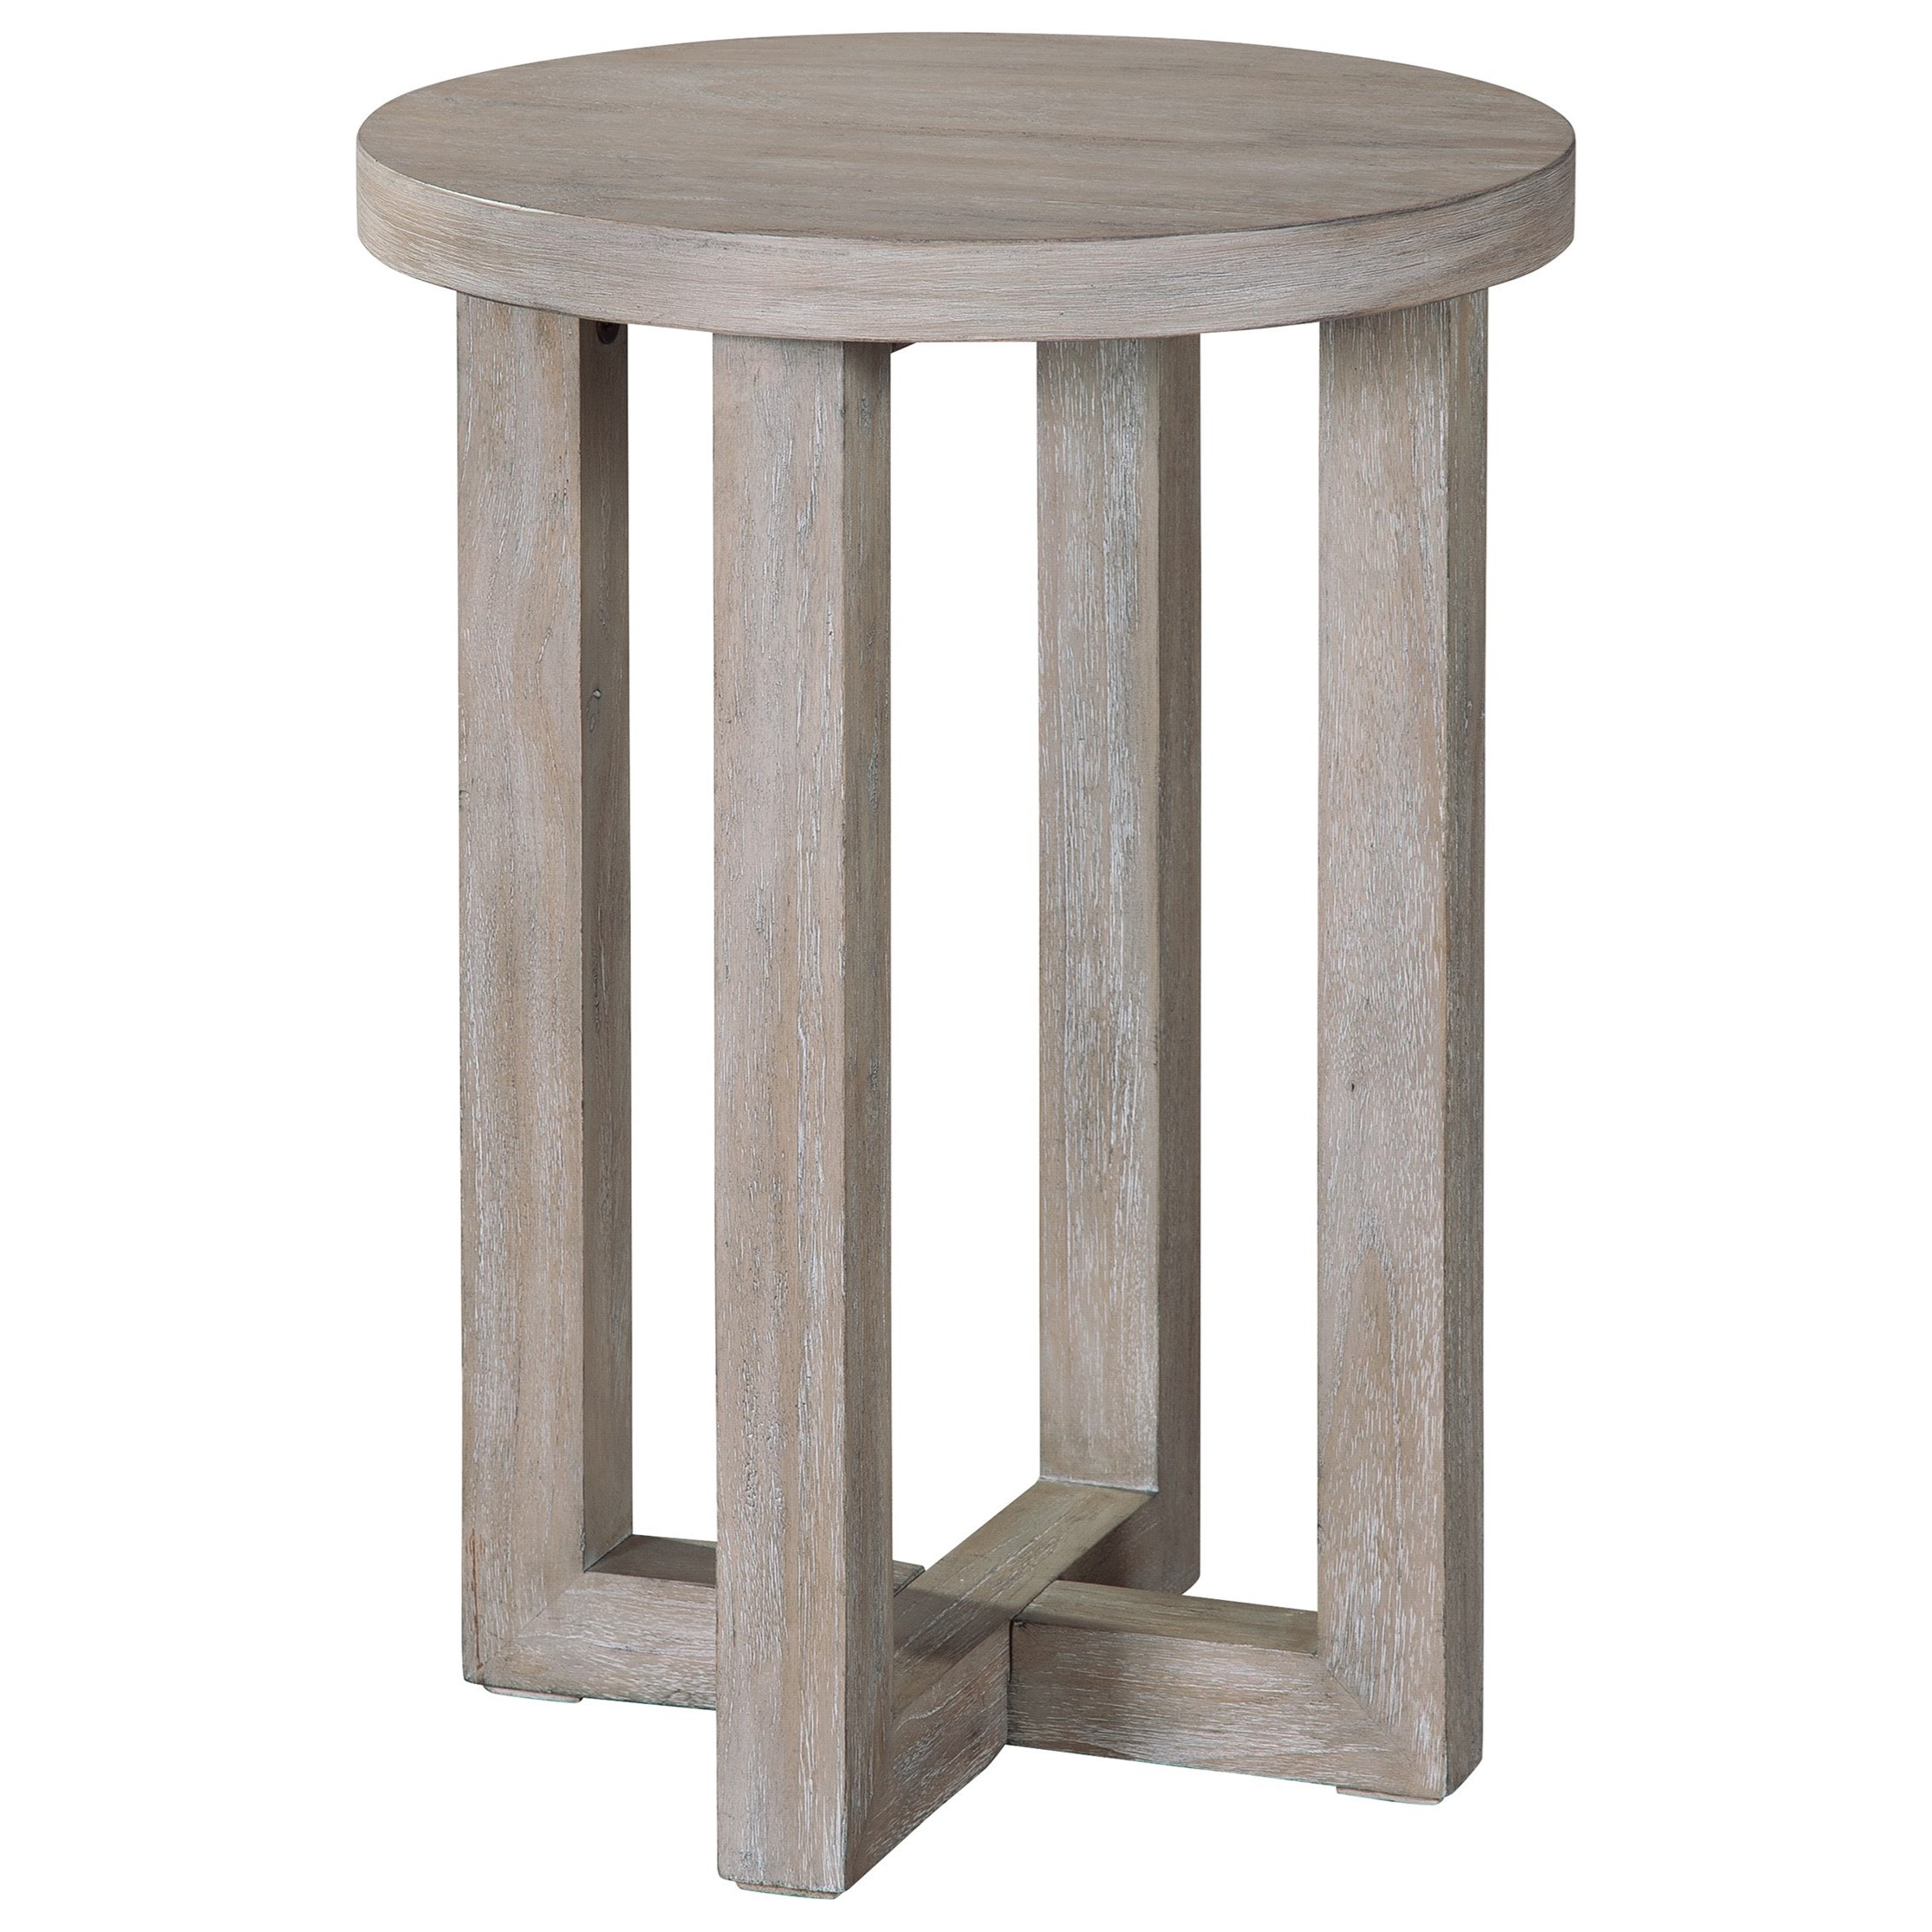 Berkeley Heights Round Chairside Table by Hekman at Alison Craig Home Furnishings